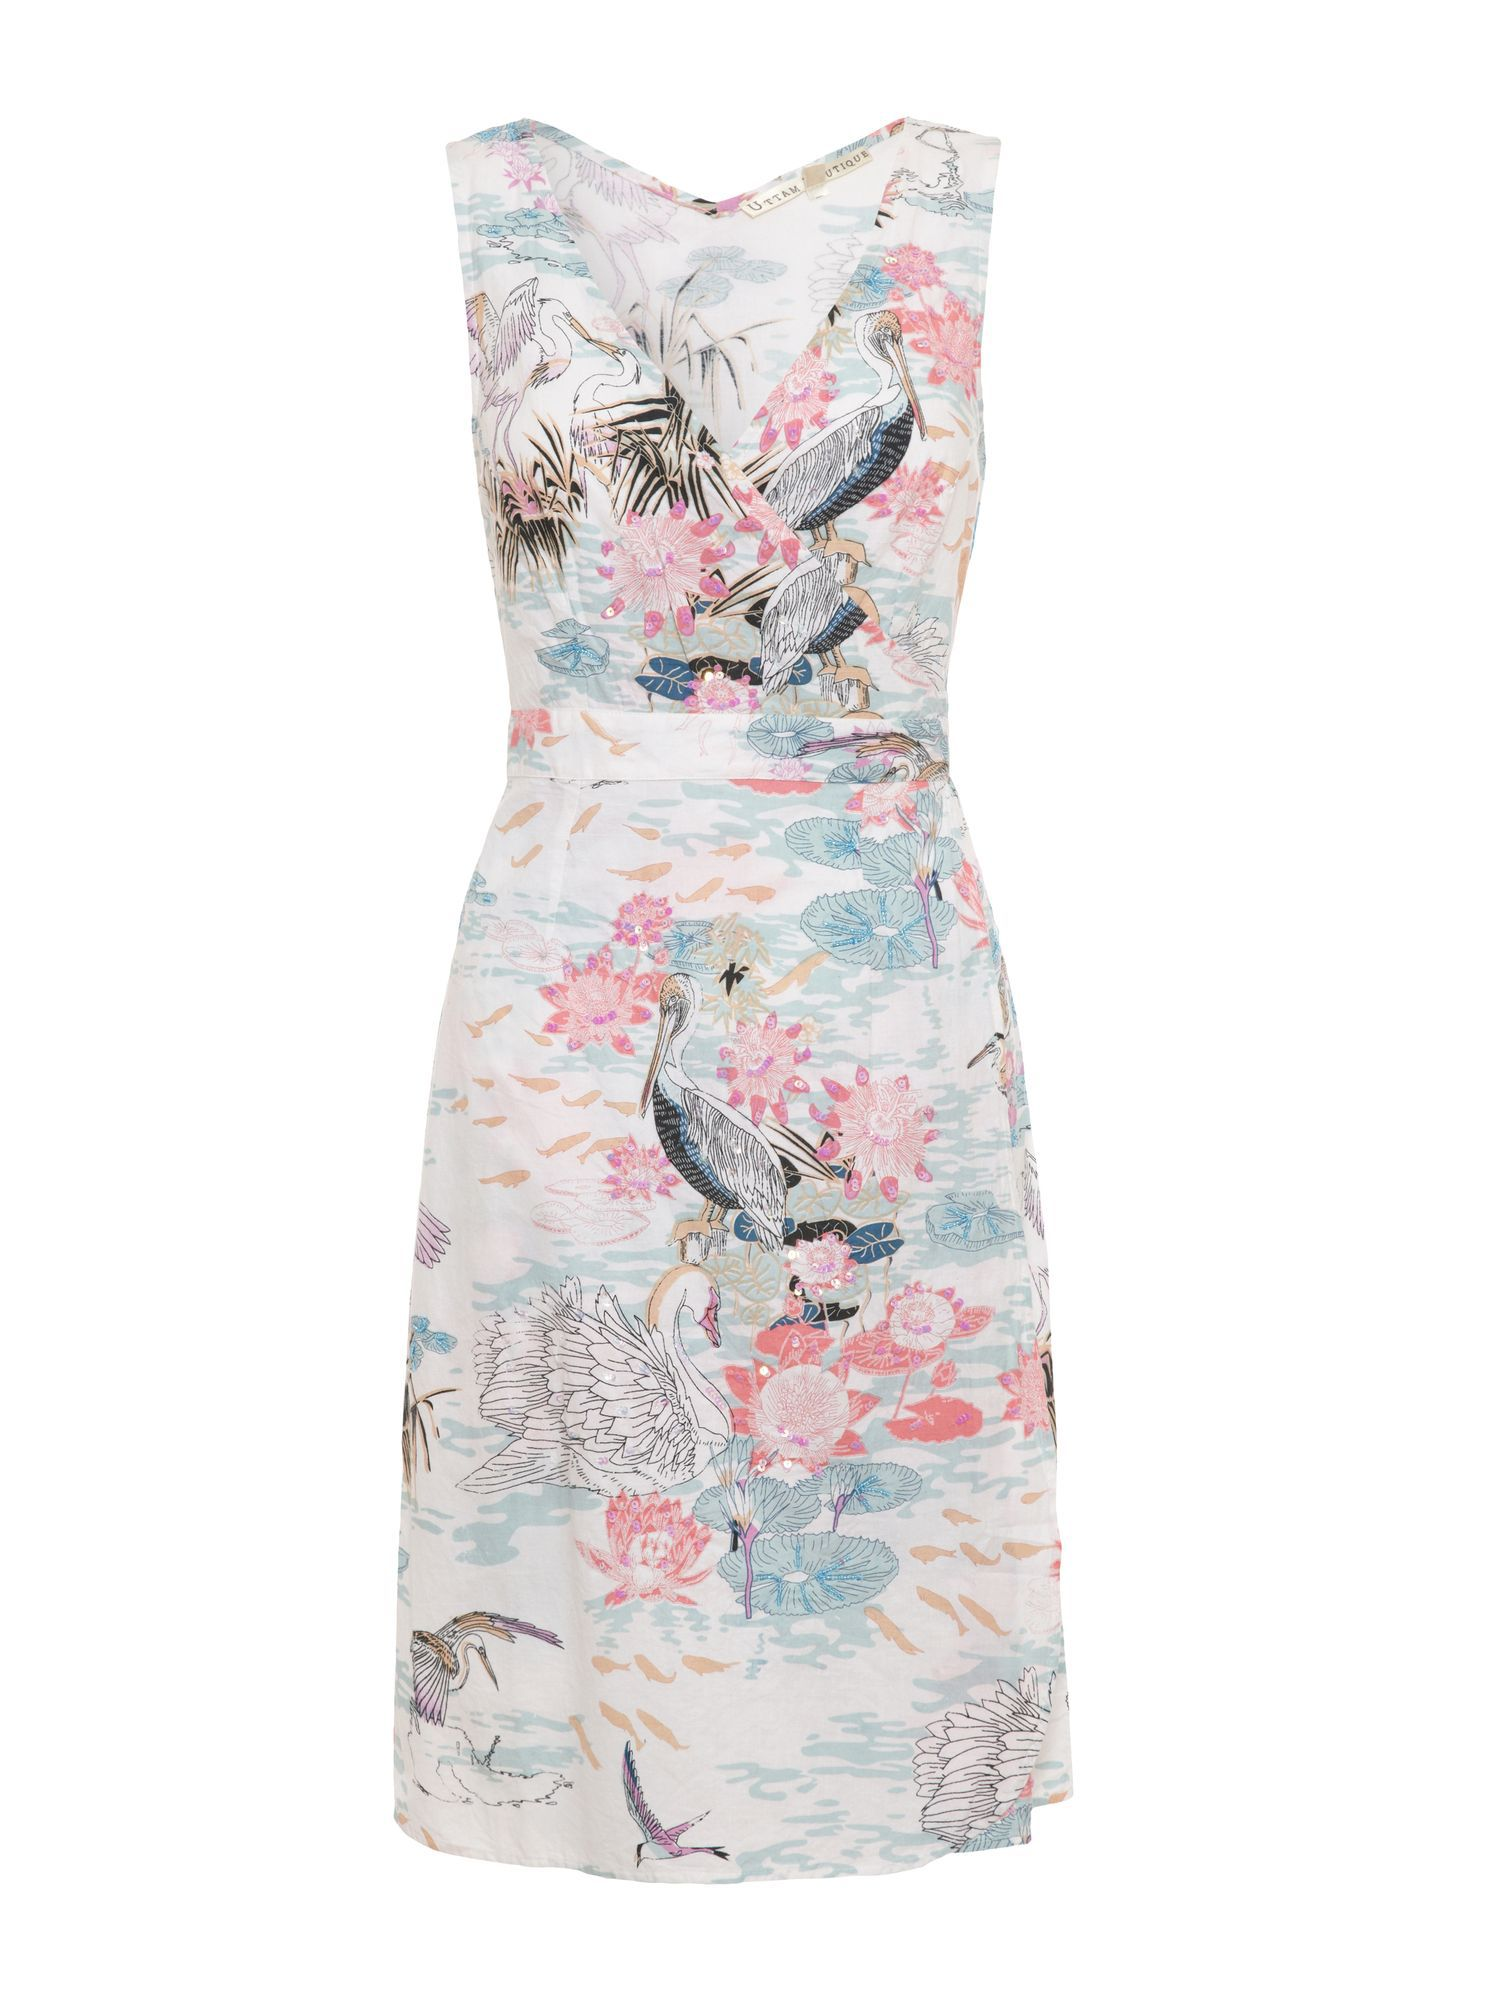 Oriental bird and water wrap dress